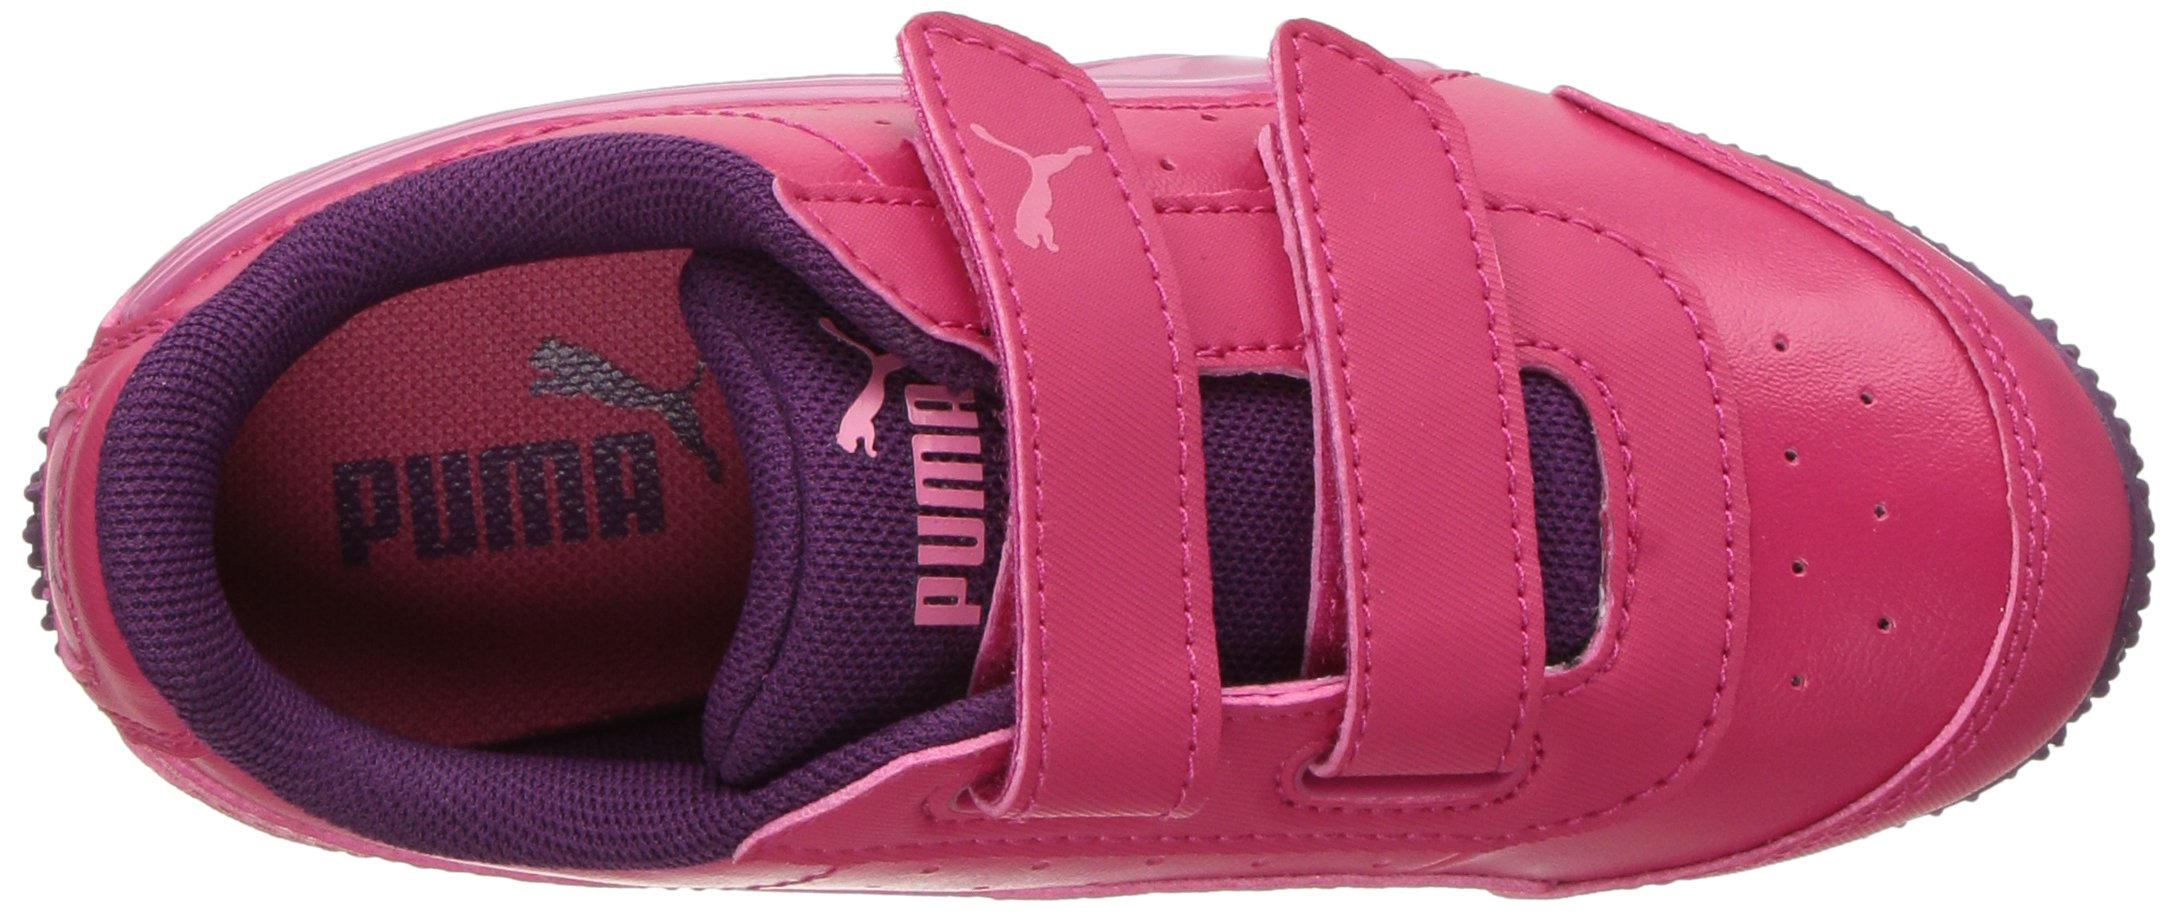 PUMA Baby Speed Lightup Power V Kids Sneaker, Love Potion-Rapture Rose, 5 M US Toddler by PUMA (Image #8)